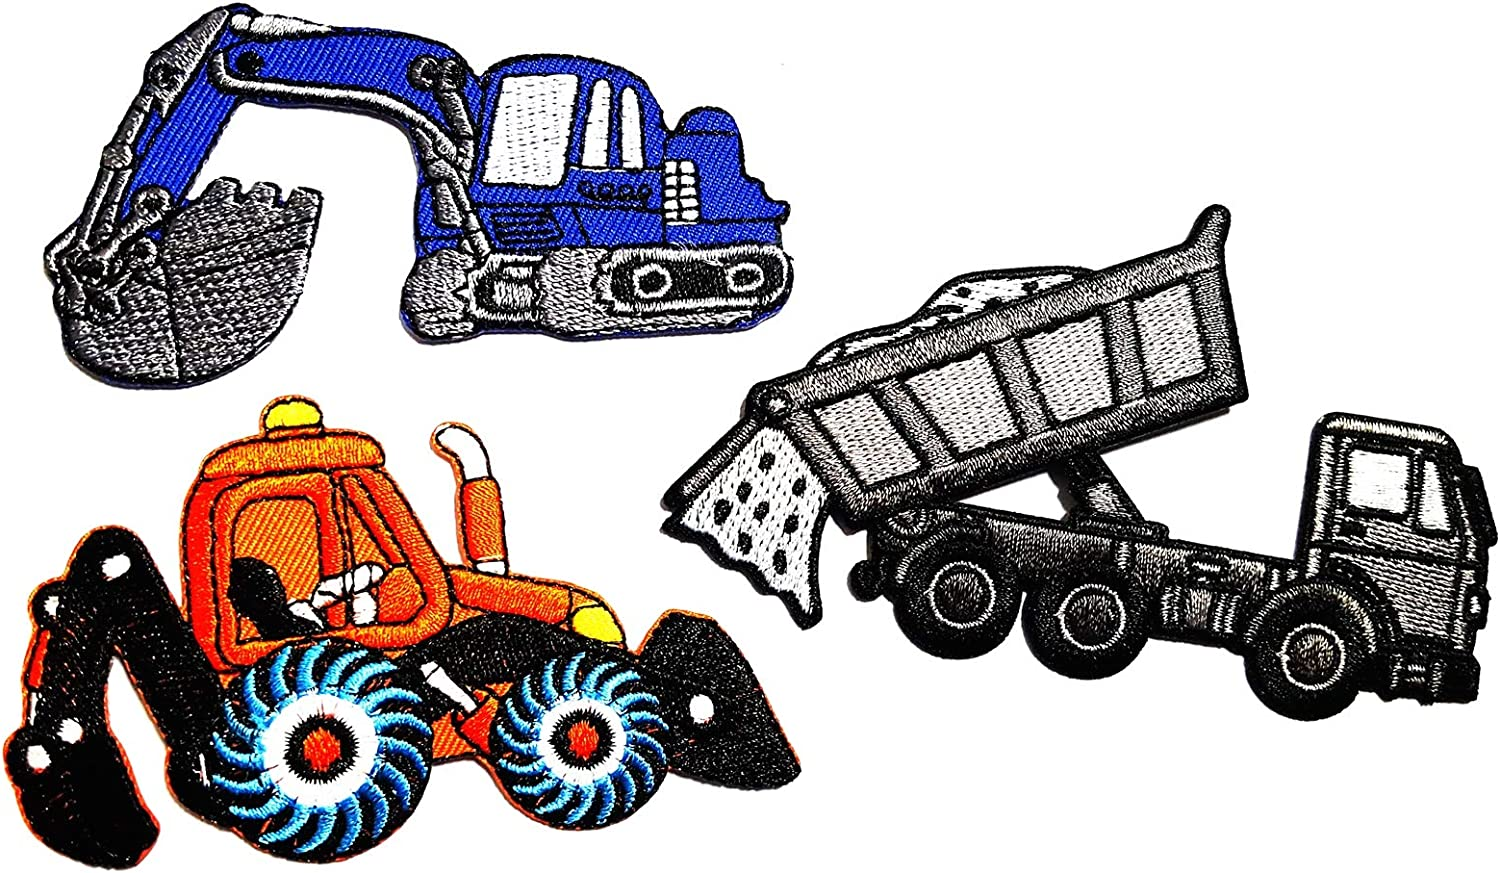 Nipitshop Patches Set of 3 Pcs Tractor Crawler plow Farm Truck Mint Green Patch Blue Backhoe Digger Tractor Loader Trackhoe Bulldozer Applique Iron-on Patch